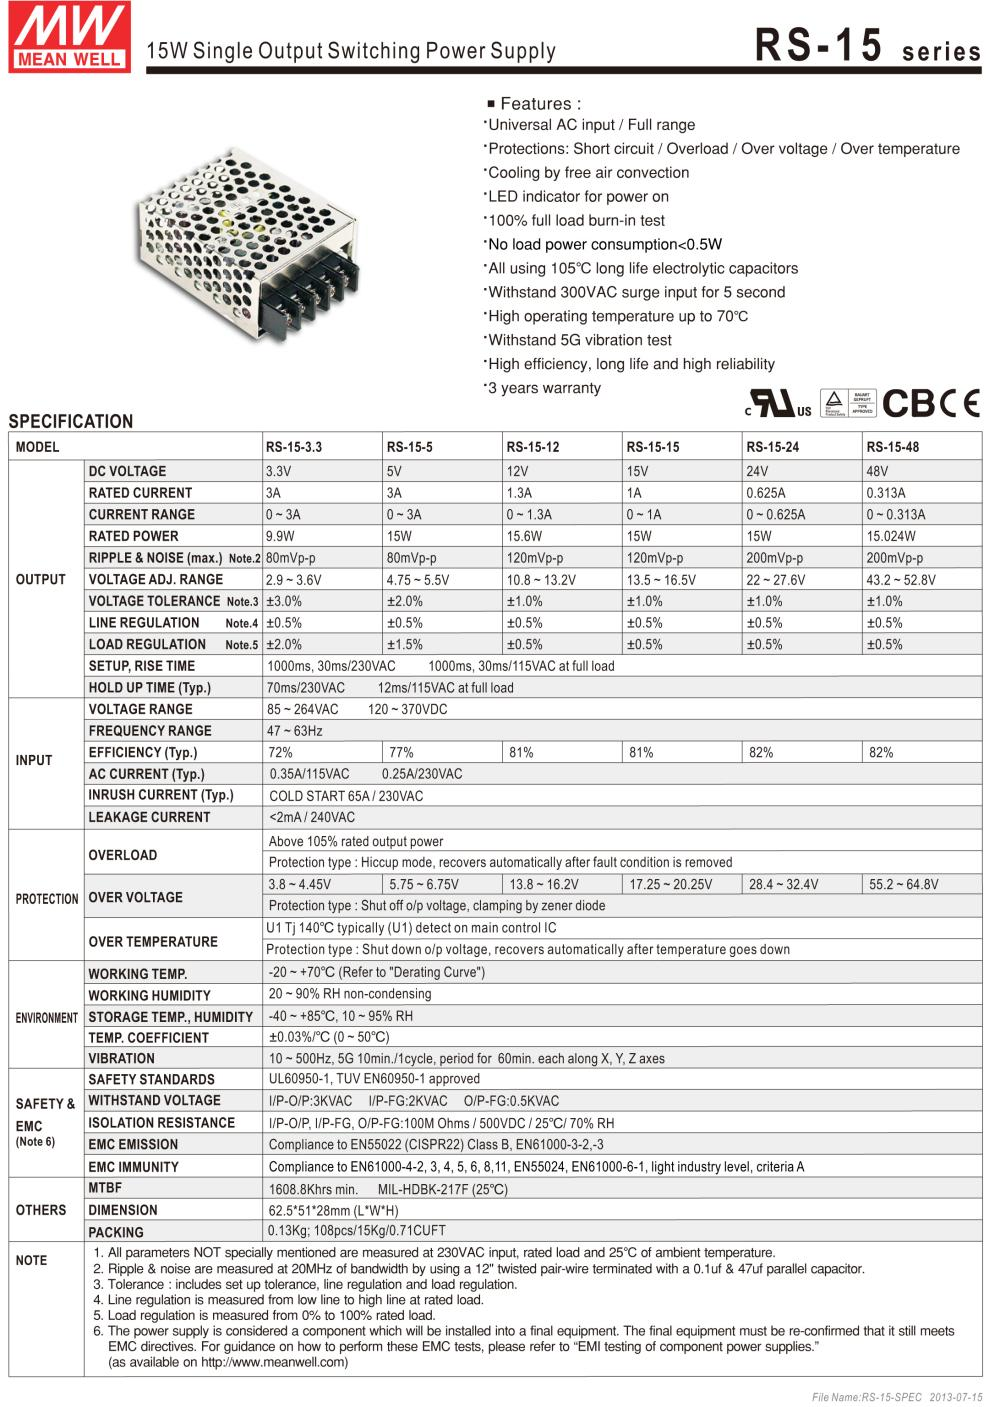 MEANWELL_POWER_SUPPLY_HOT_SELLING_RS_15_5_2